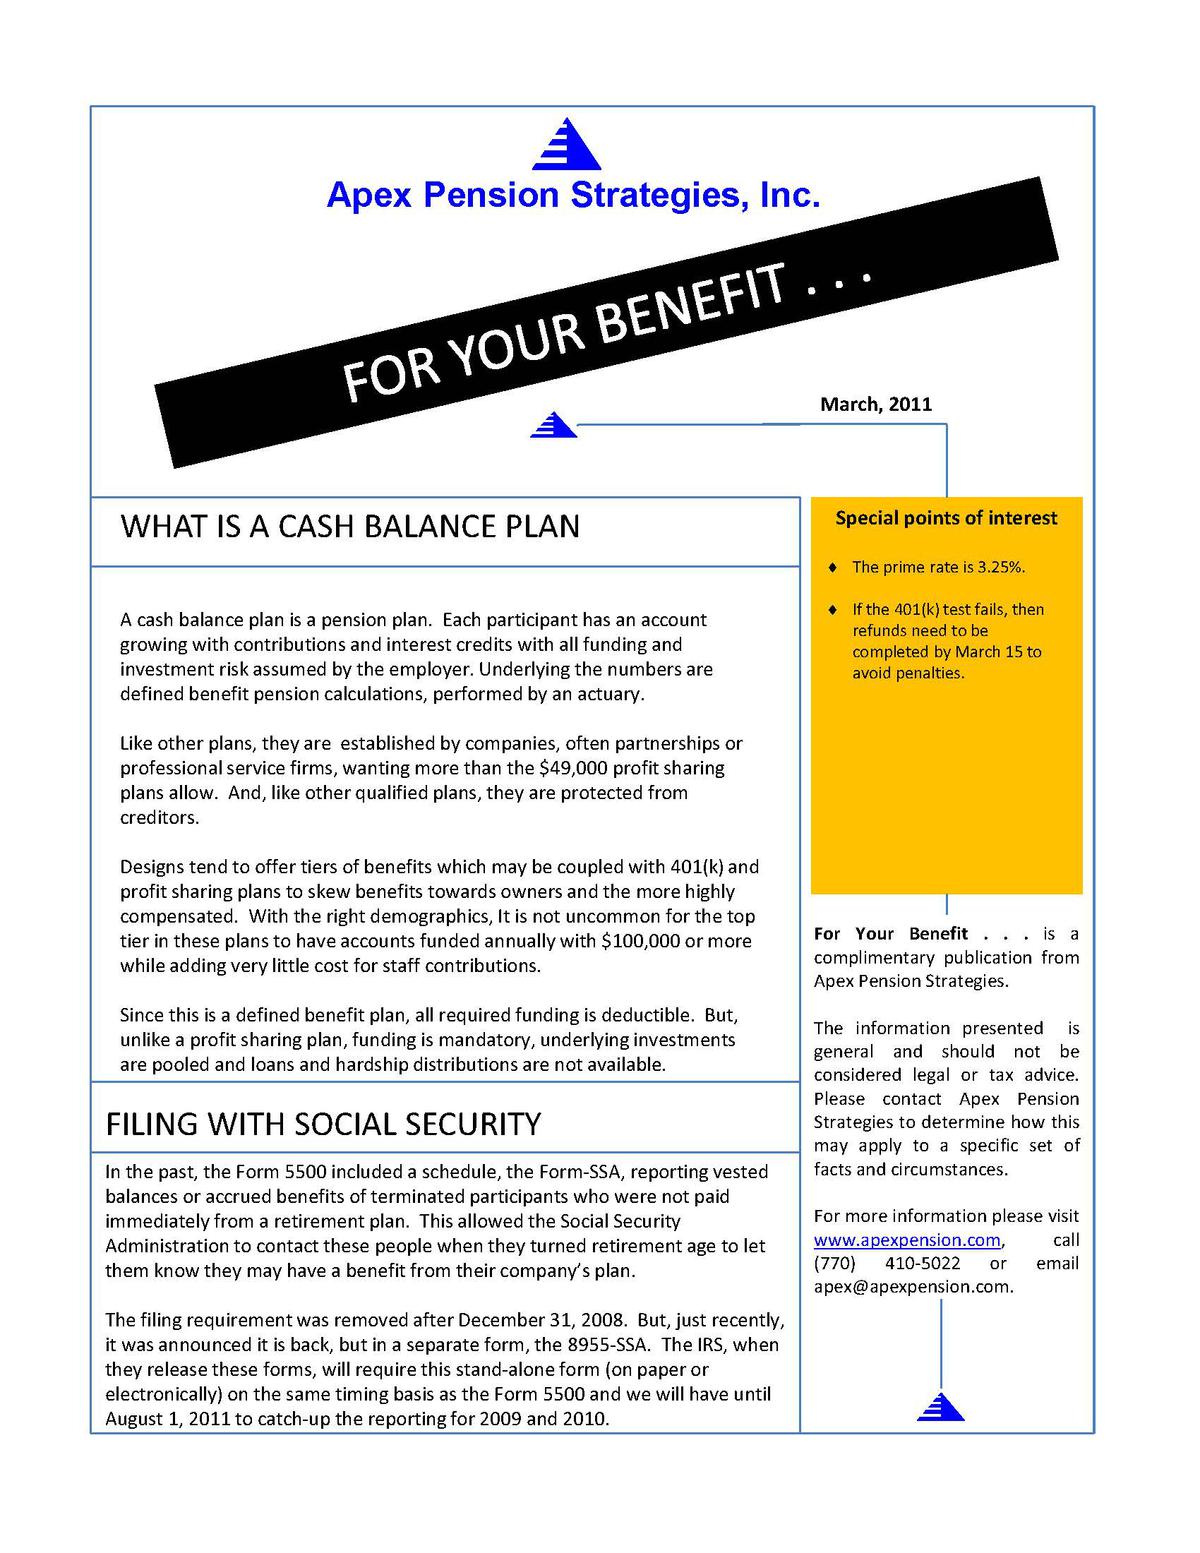 Filing With Social Security (8955-ssa)